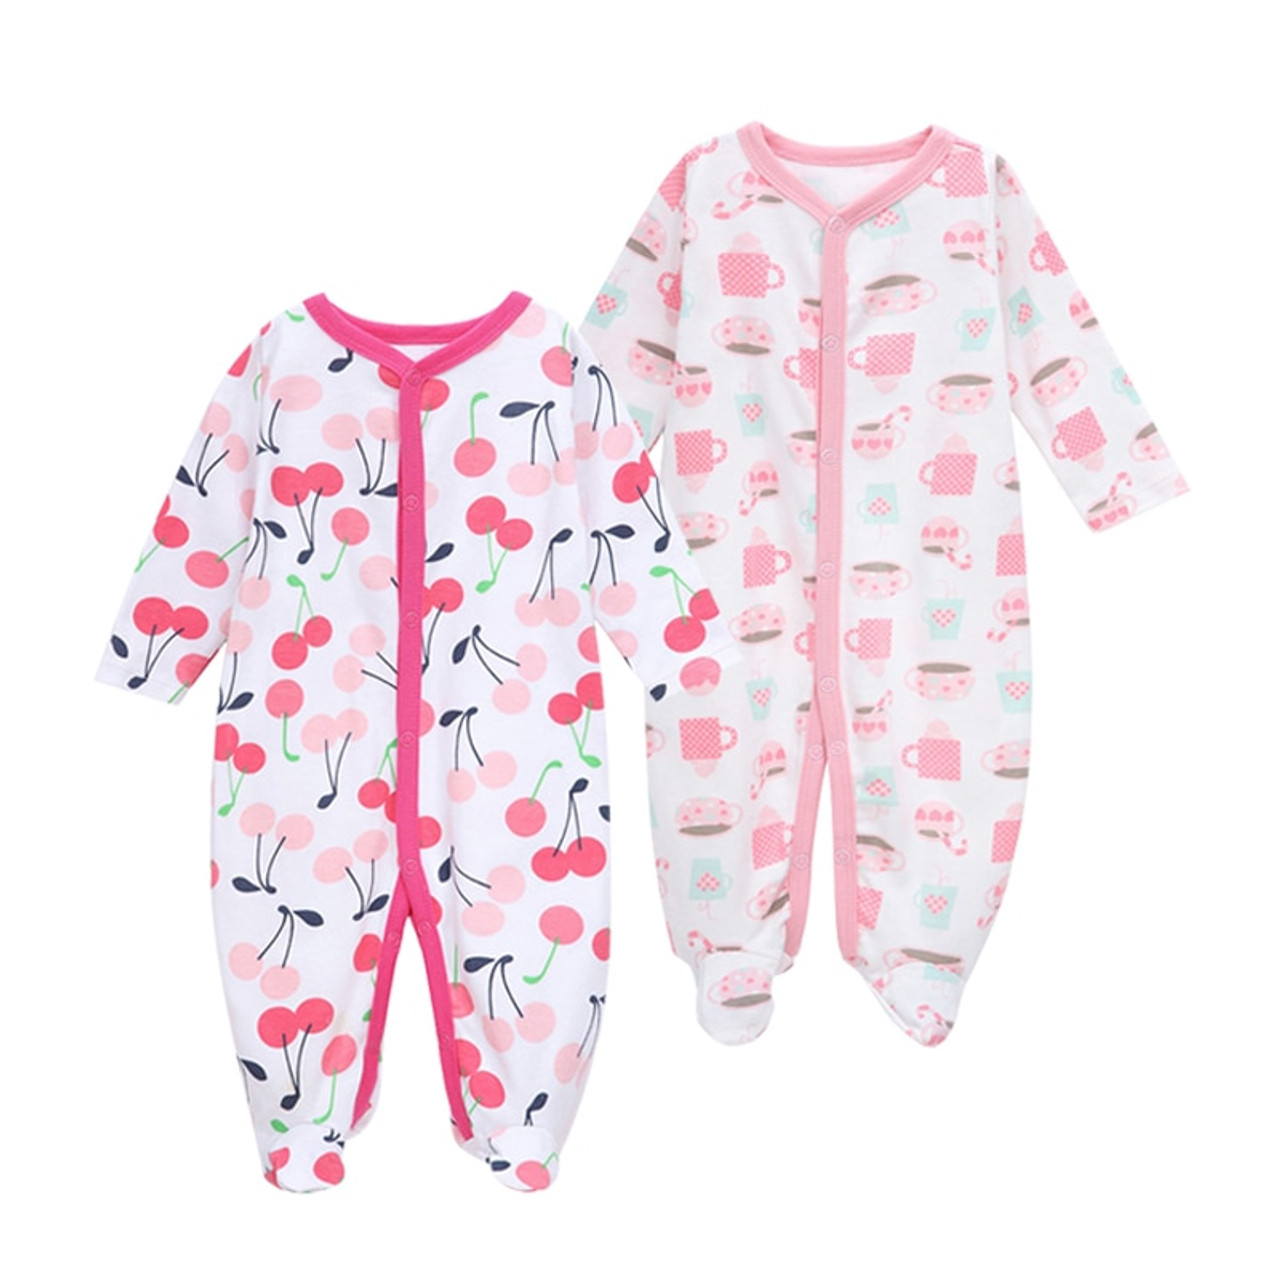 4aafdf728065 ... 2018 New Baby Clothing Newborn Baby Boy Girl Romper Baby Clothes Long  Sleeve Infant Product 2 ...